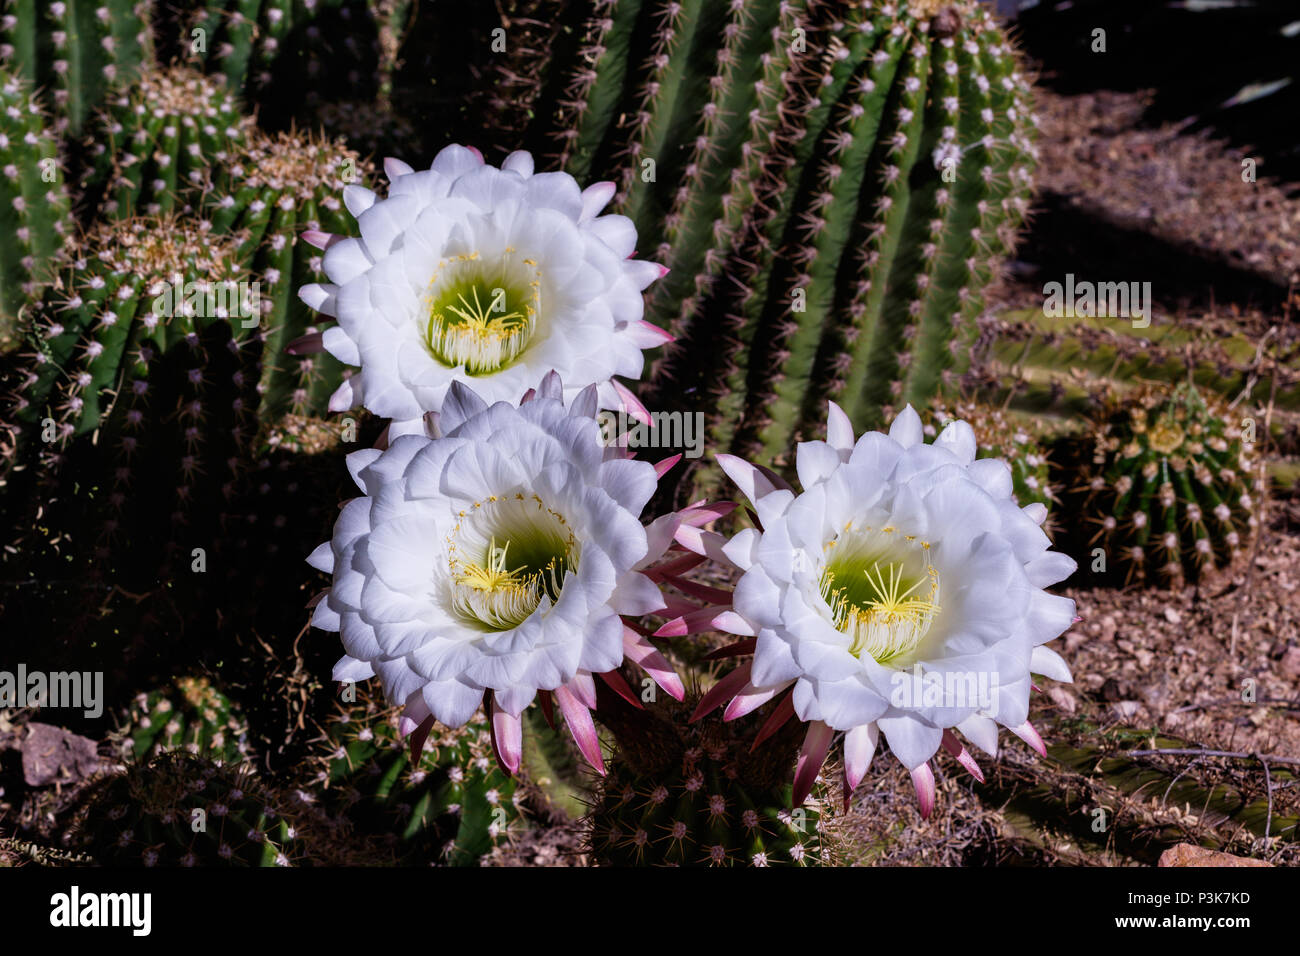 Giant white flowers blooming on argentine giant cactus echinopsis giant white flowers blooming on argentine giant cactus echinopsis candicans from south america other desert succulent plants are in the background mightylinksfo